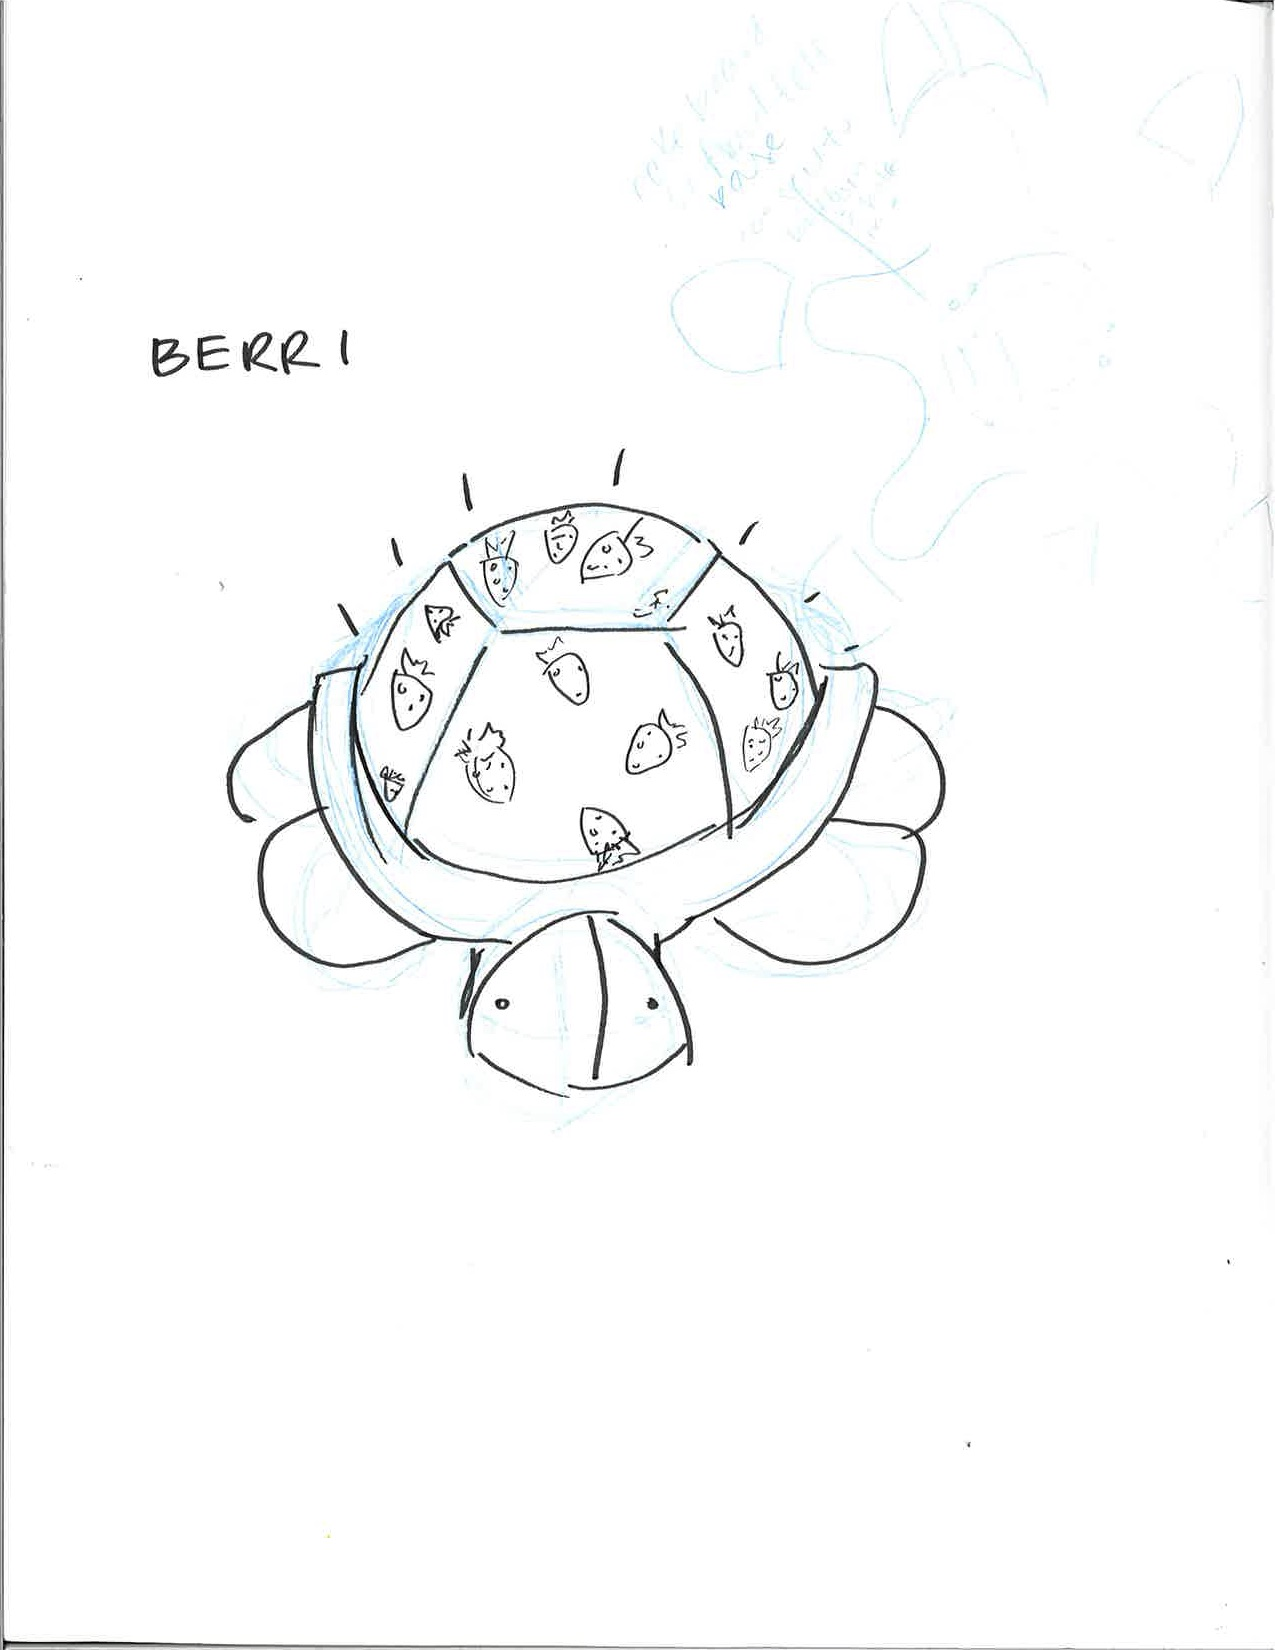 catherine stoddard page 2 making studio RGB LED Christmas initial concept sketch of berri with the glowing shell